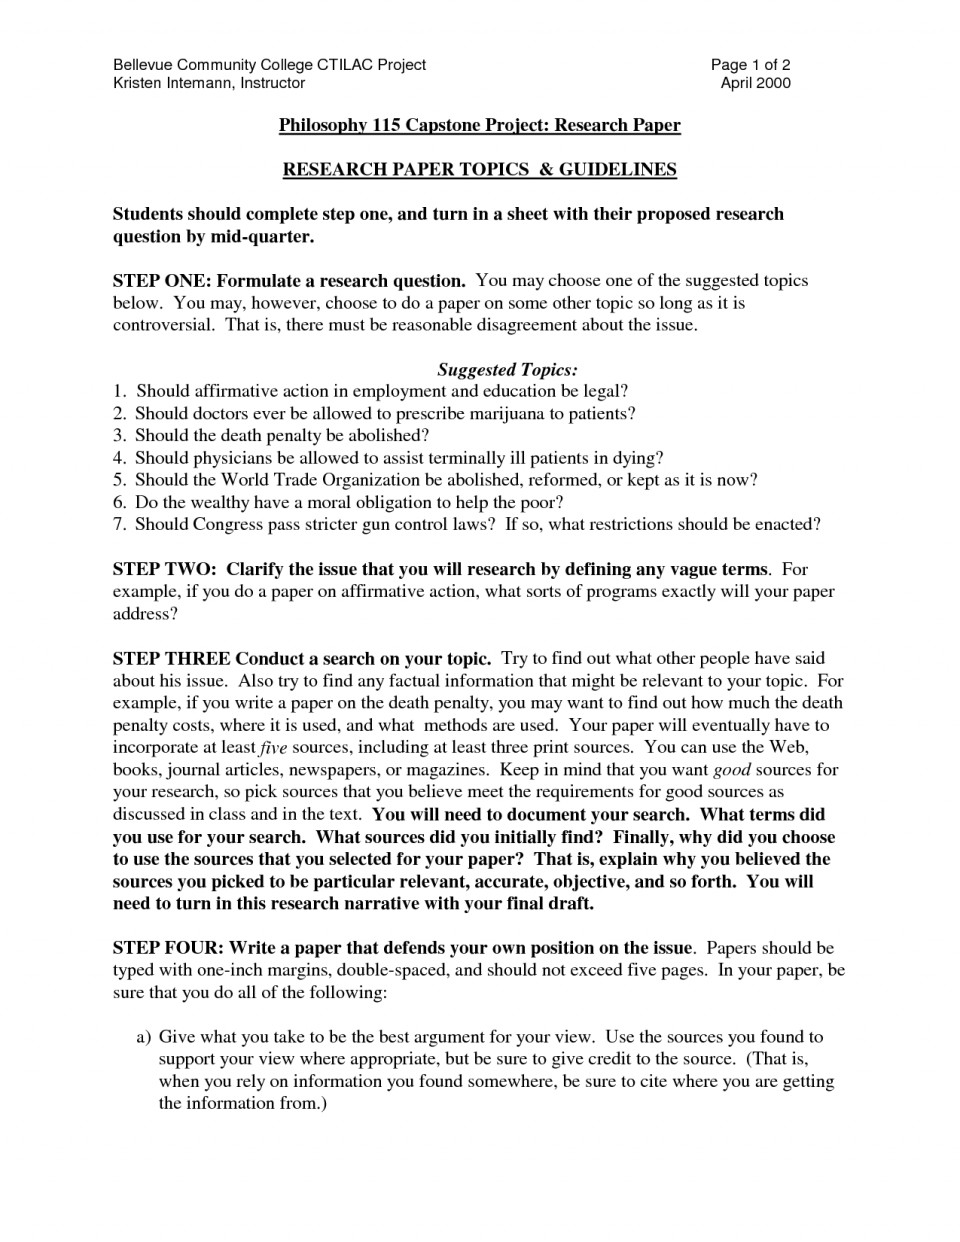 002 Research Paper Examples For College Impressive Sample Topics Students In The Philippines 960